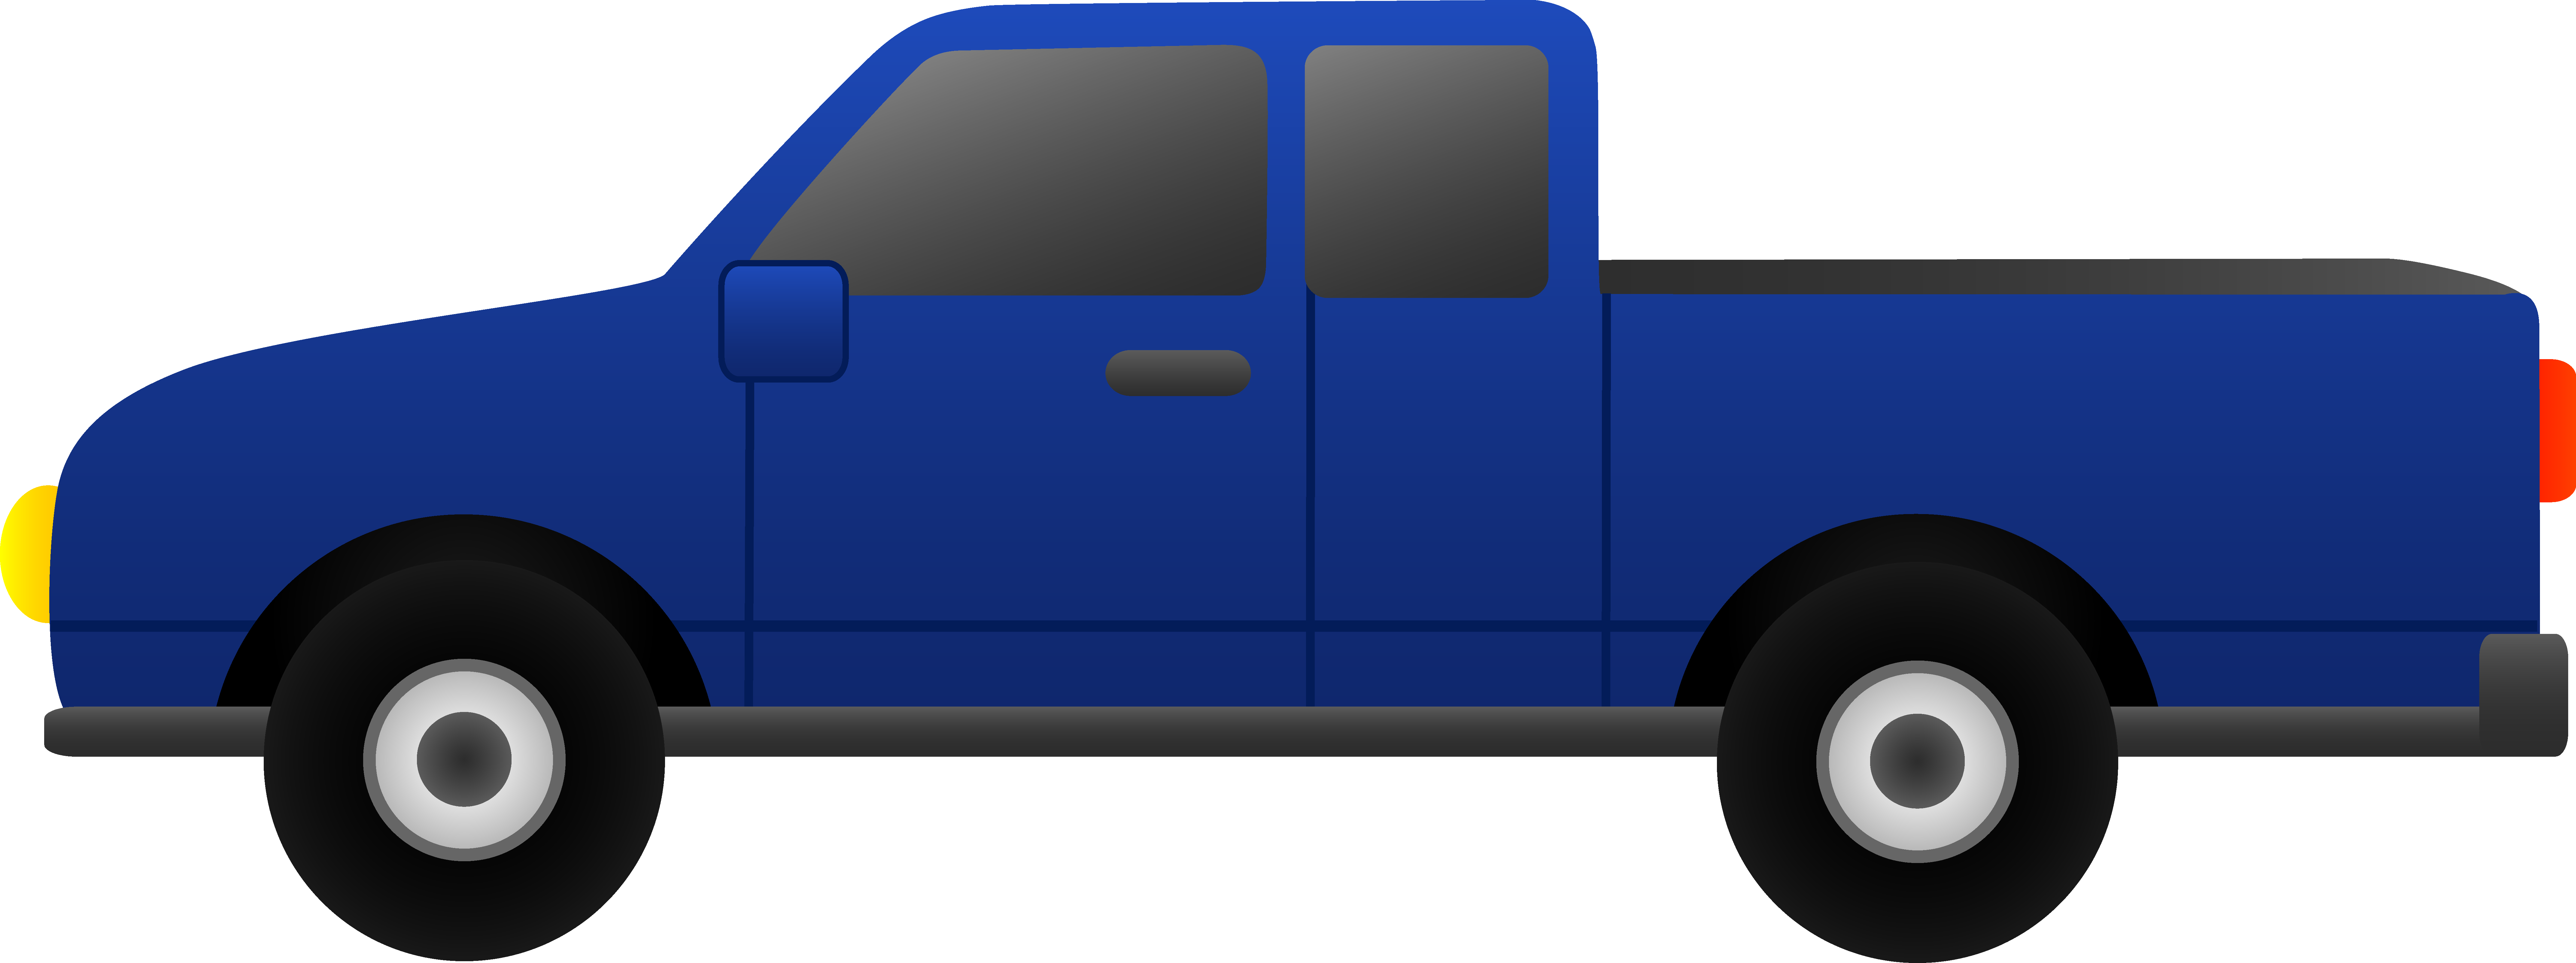 8576x3207 Free Clipart Of Trucks